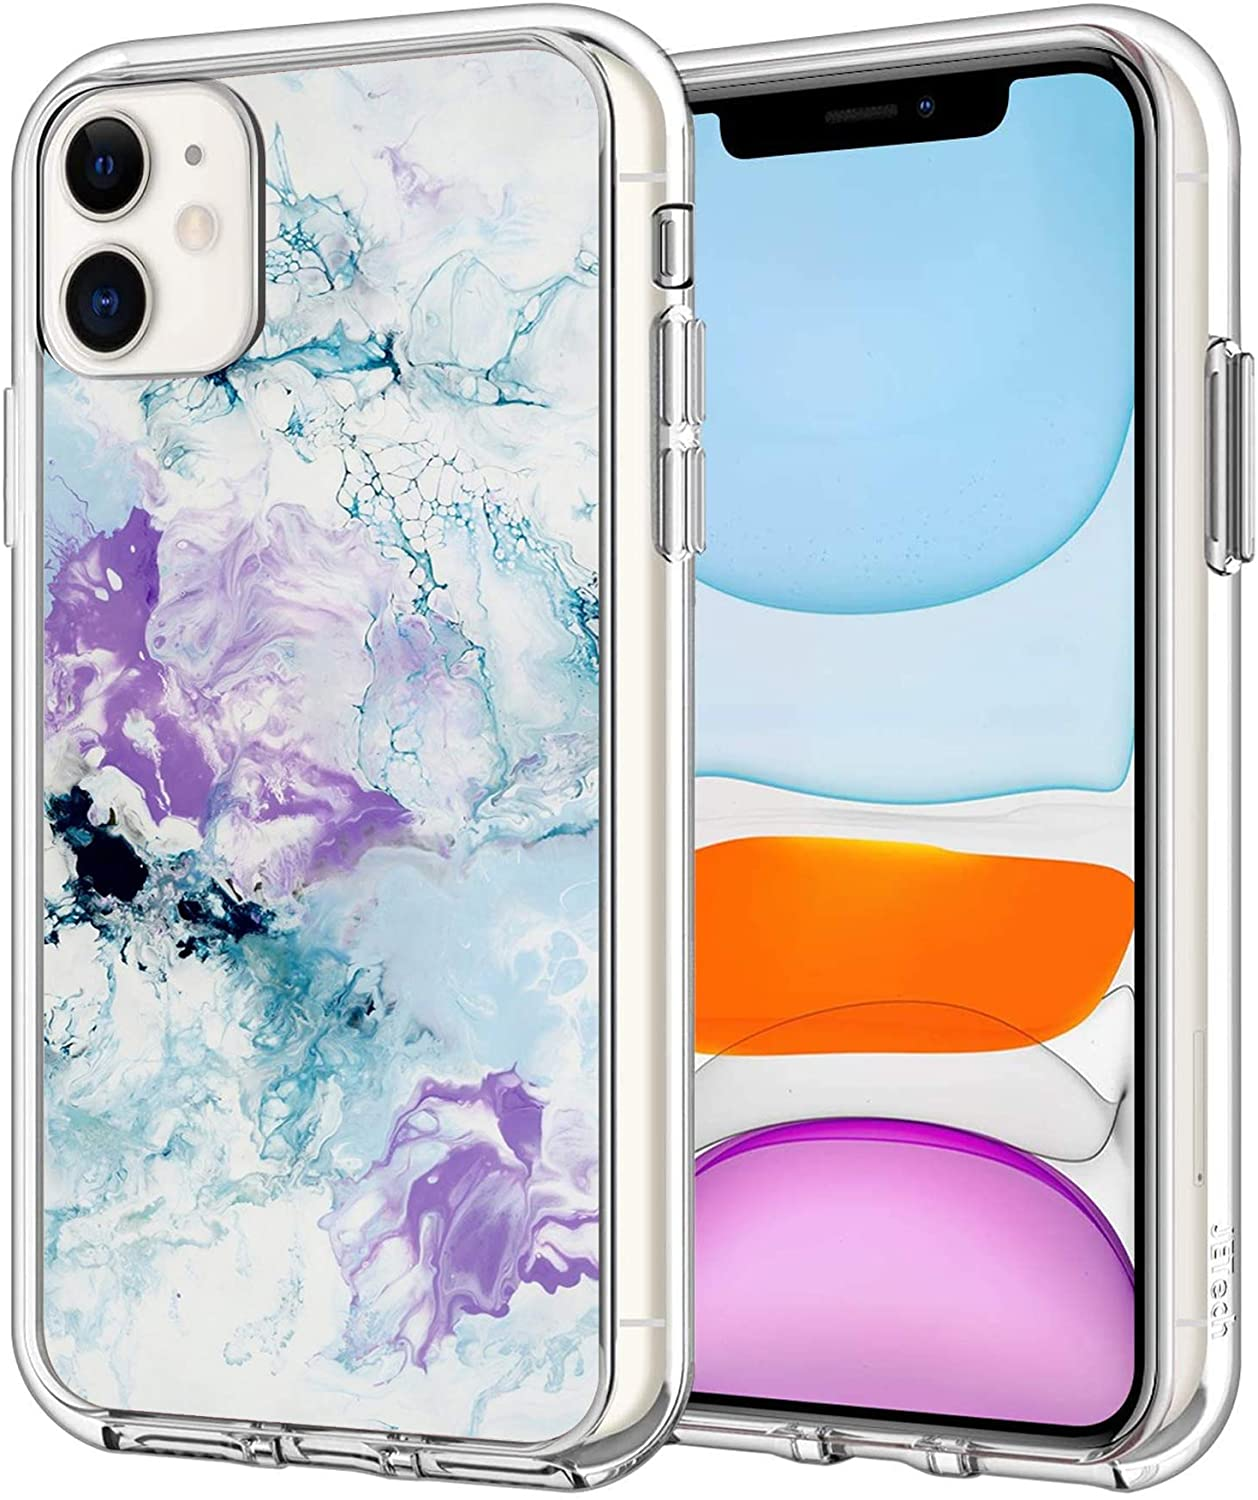 iPhone 11 Case Hygienically Marble Clear Transparent case with a Personality Pattern Explosion-Proof (Marble 2)